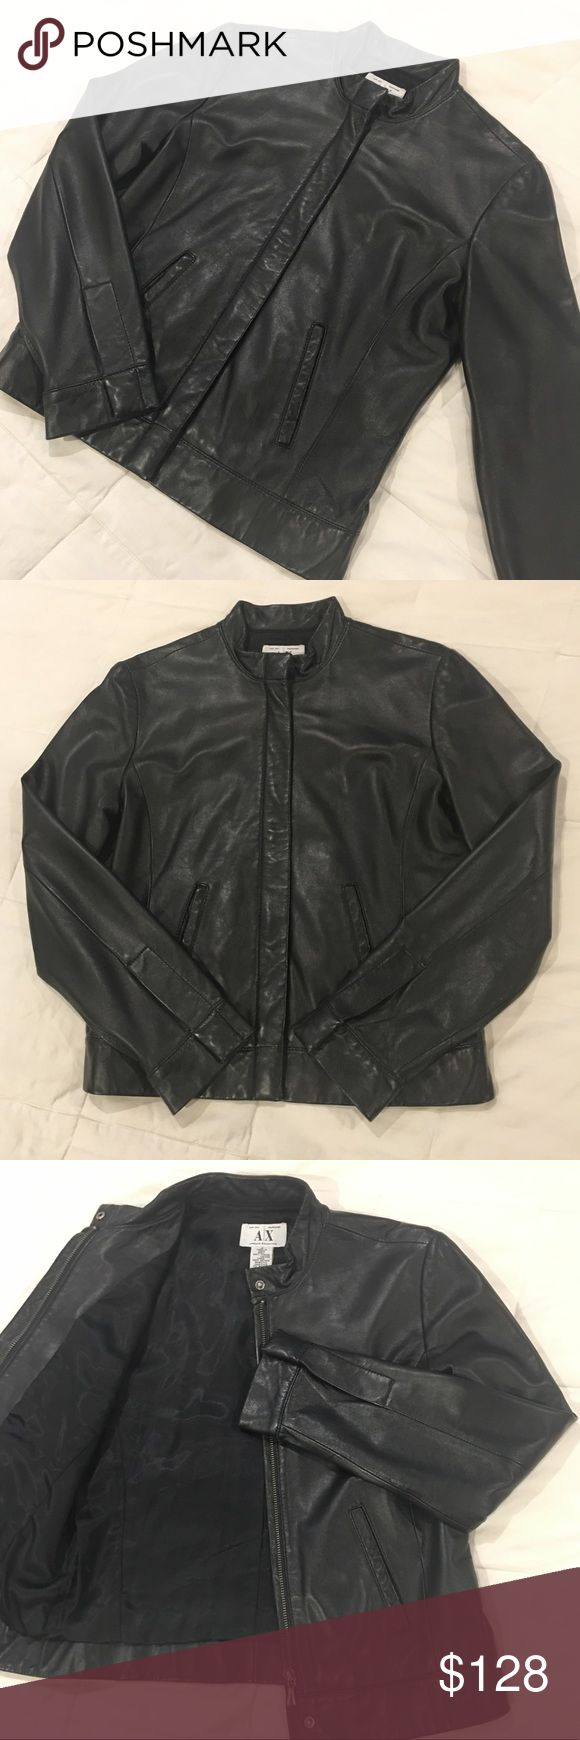 Armani Exchange Collarless Leather Jacket Gently worn black leather jacket, doesn't have any flaws. The quality is unmatched and will last forever. It's soft leather and not worn anywhere! Armani Exchange Jackets & Coats